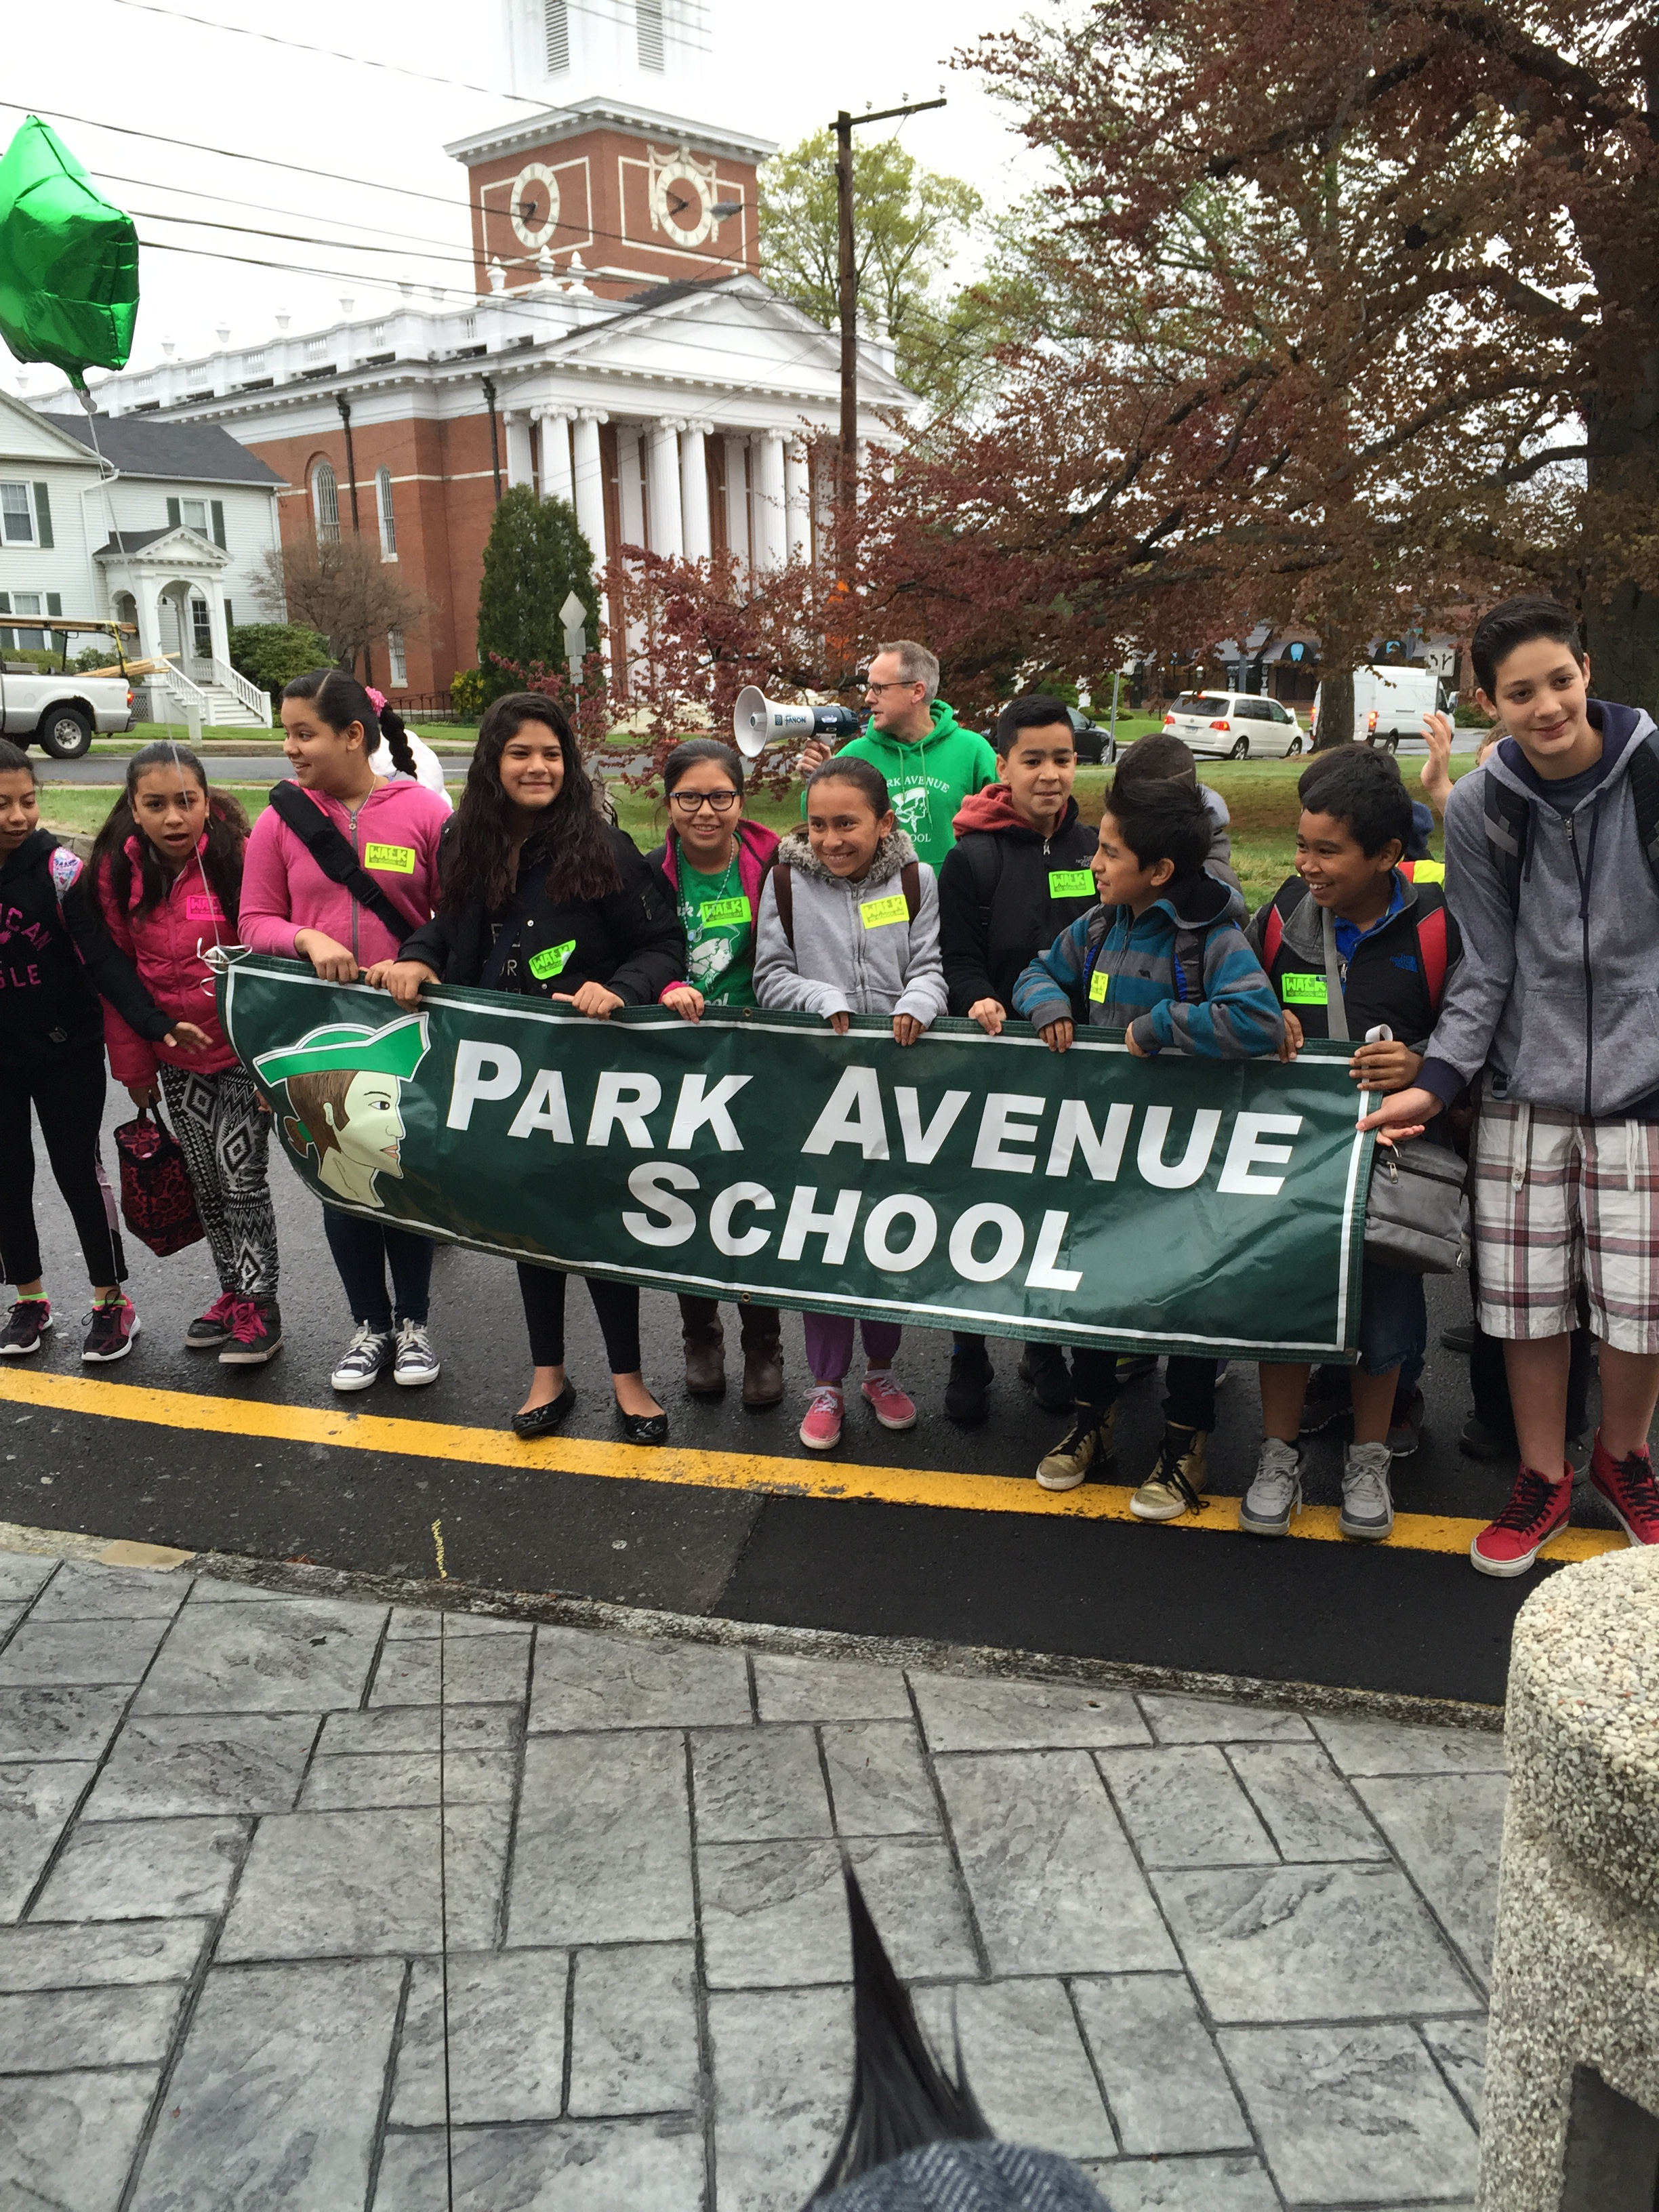 Walking School Bus to Become Regular Activity at Park Avenue